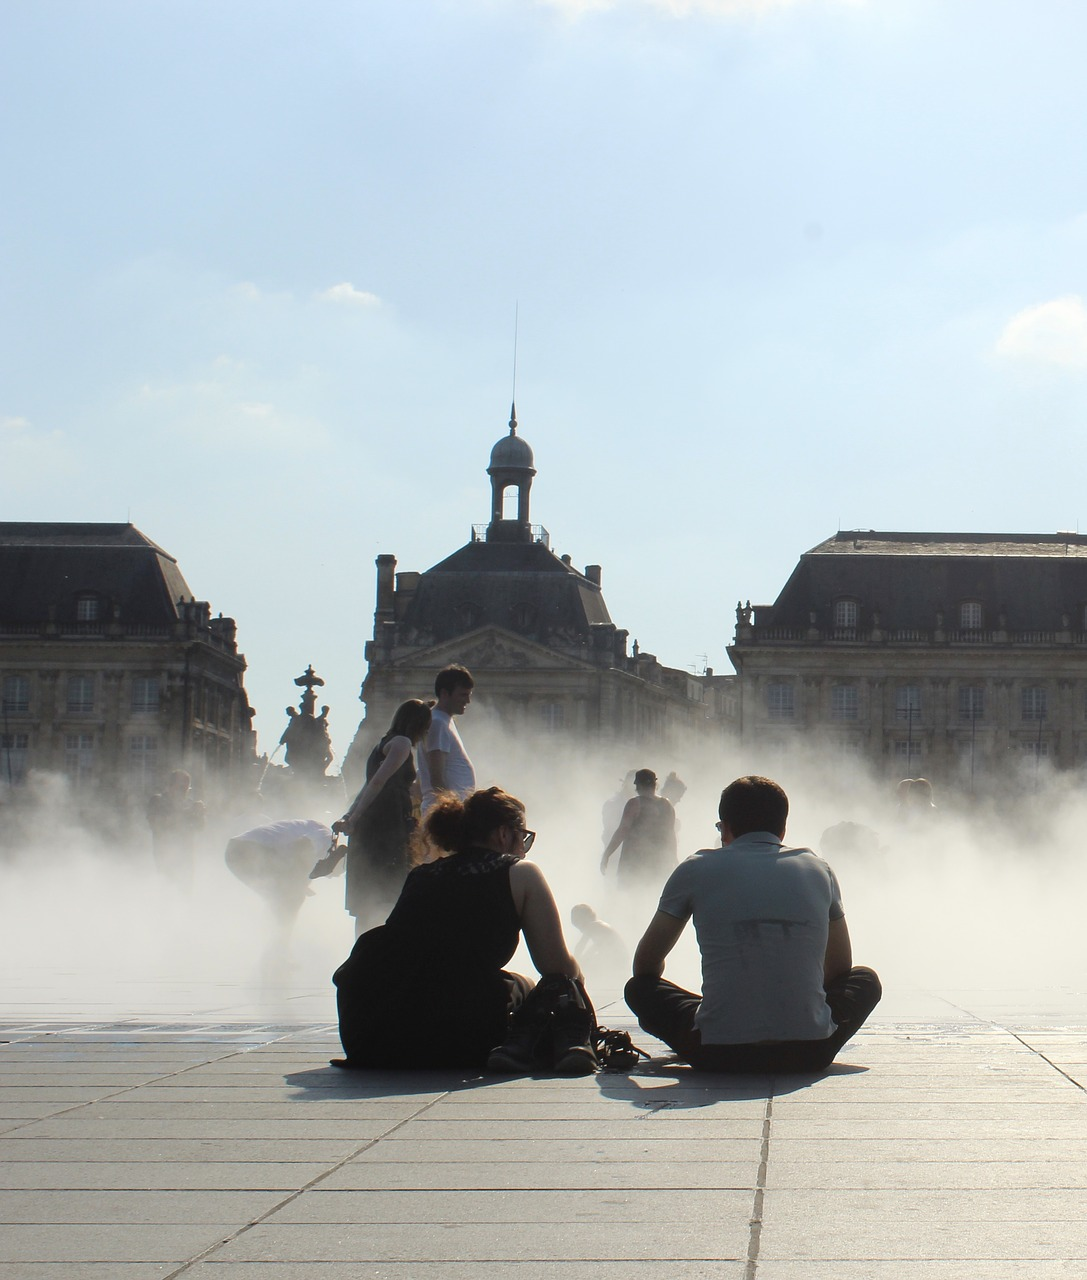 Students sitting close to the Miroir d'Eau in Bordeaux